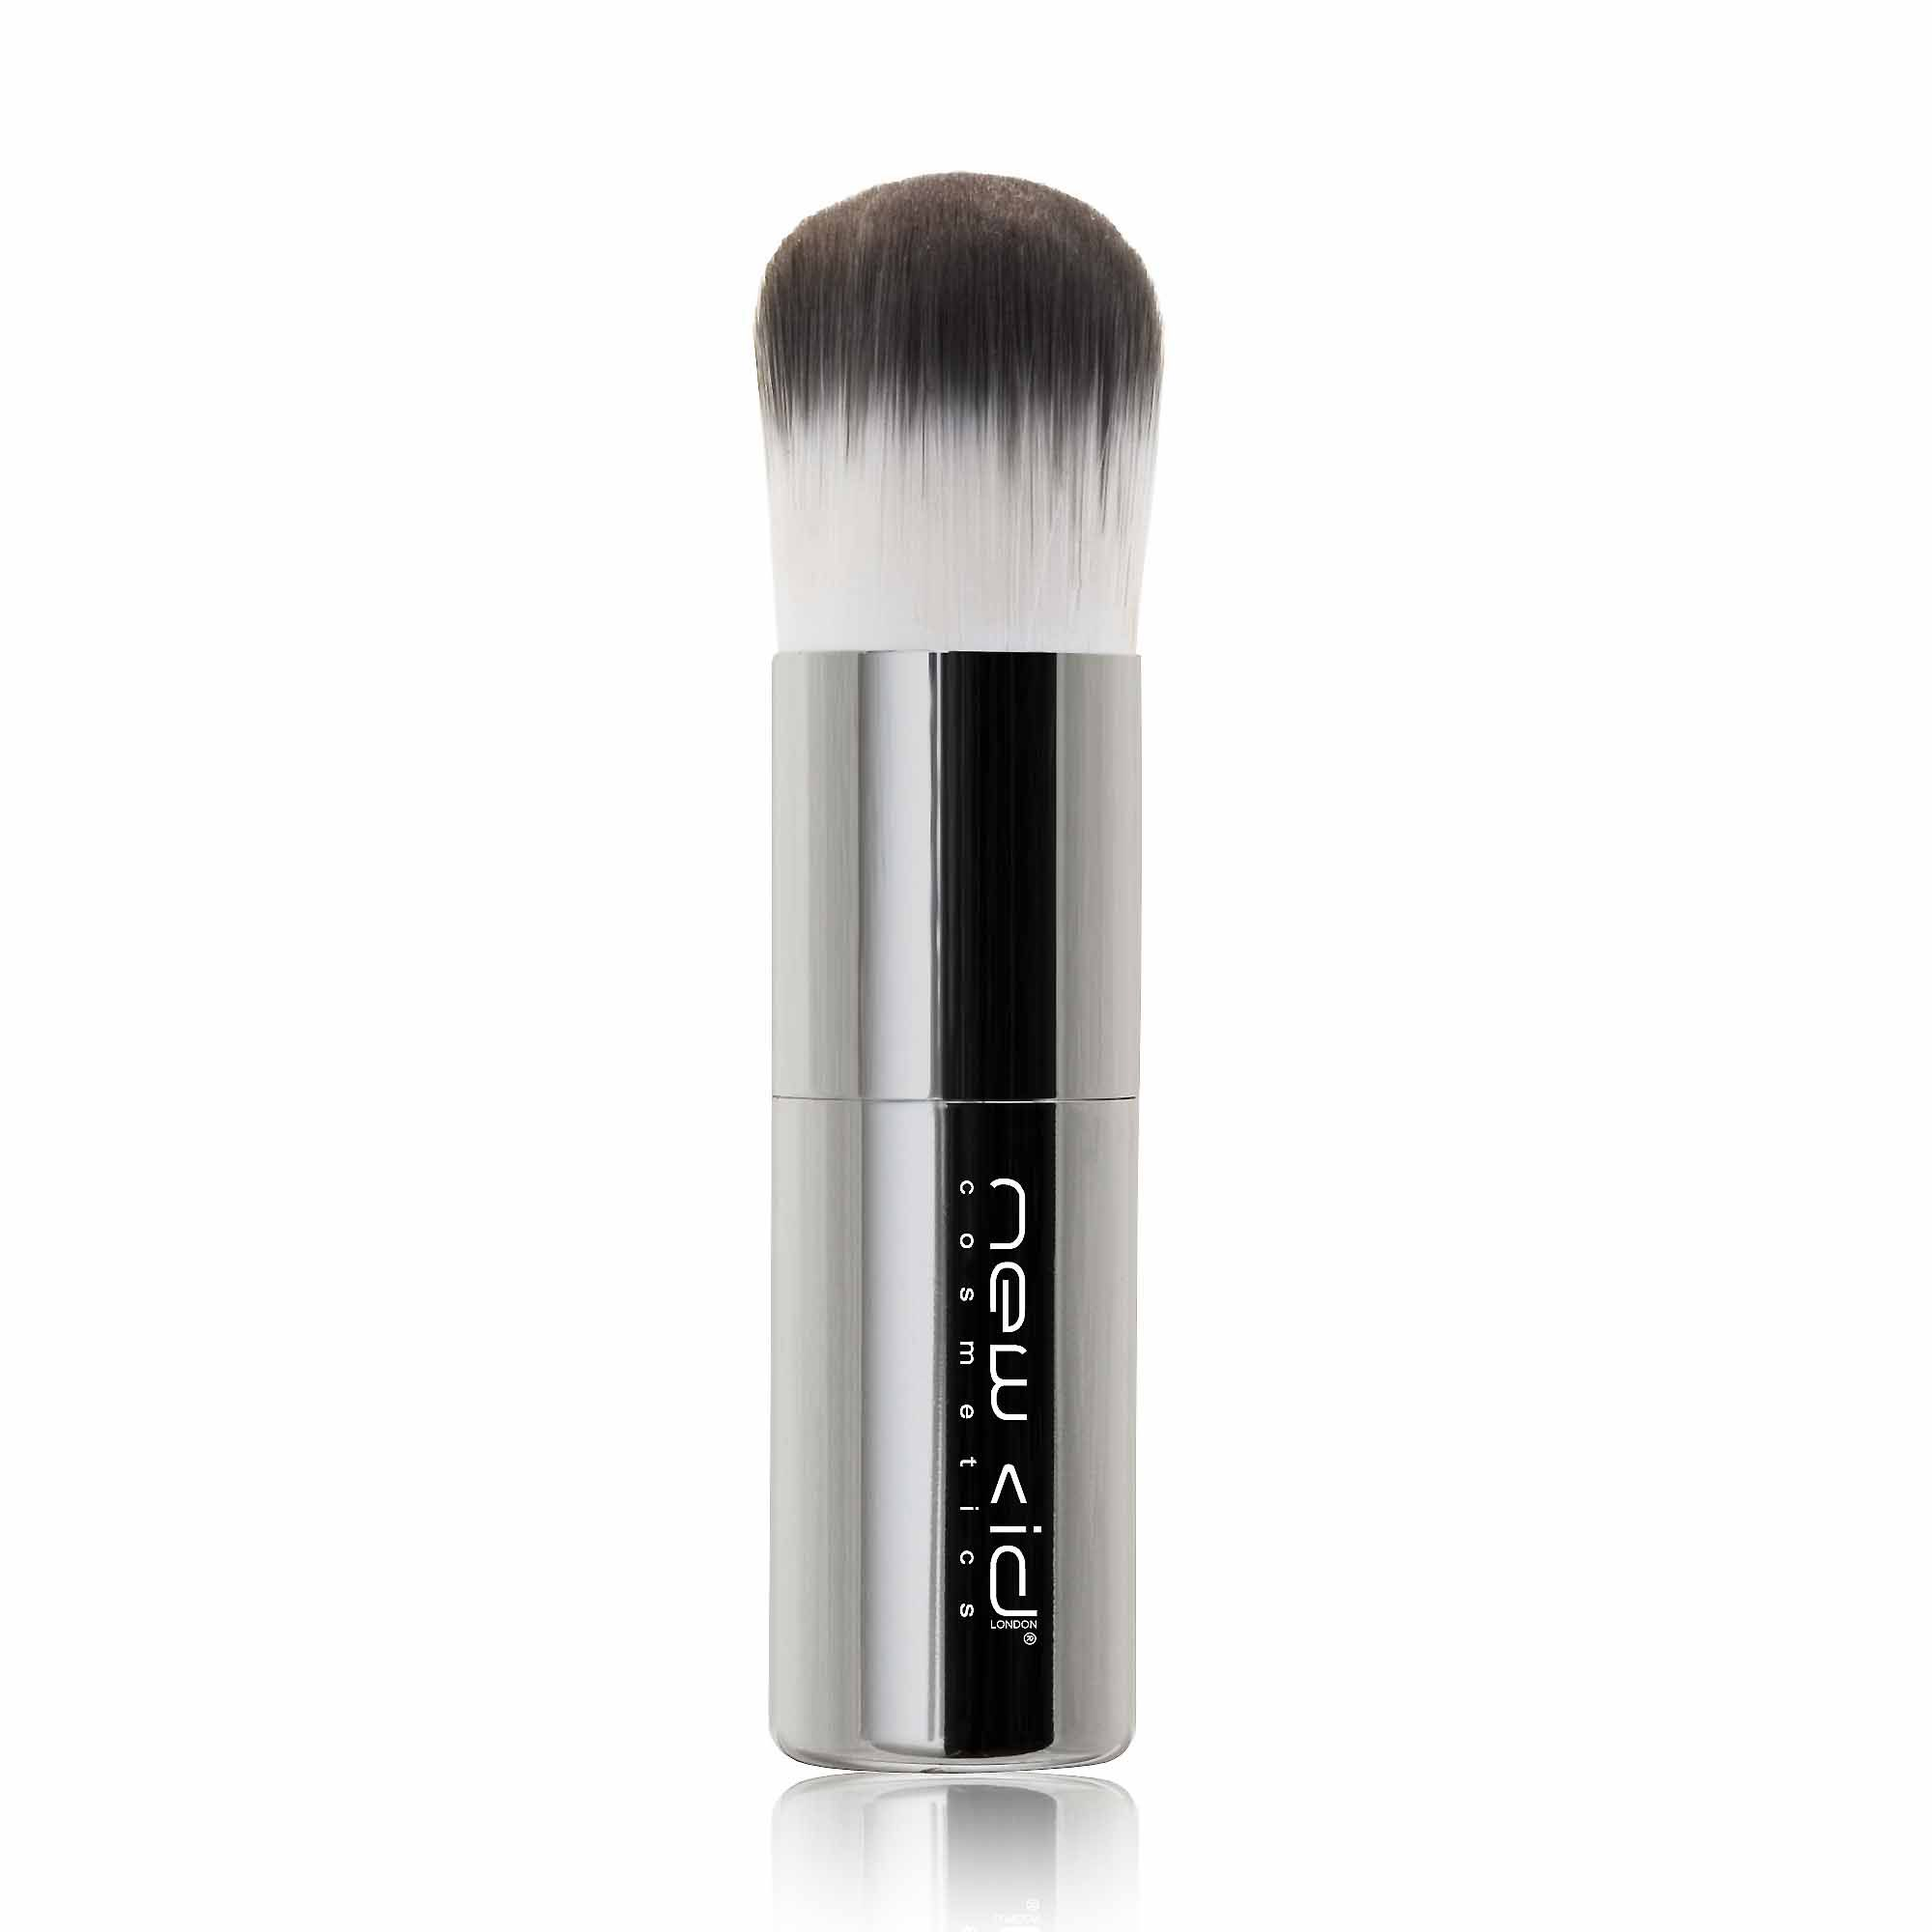 New Cid Cosmetics Pennello tascabile con setole morbide